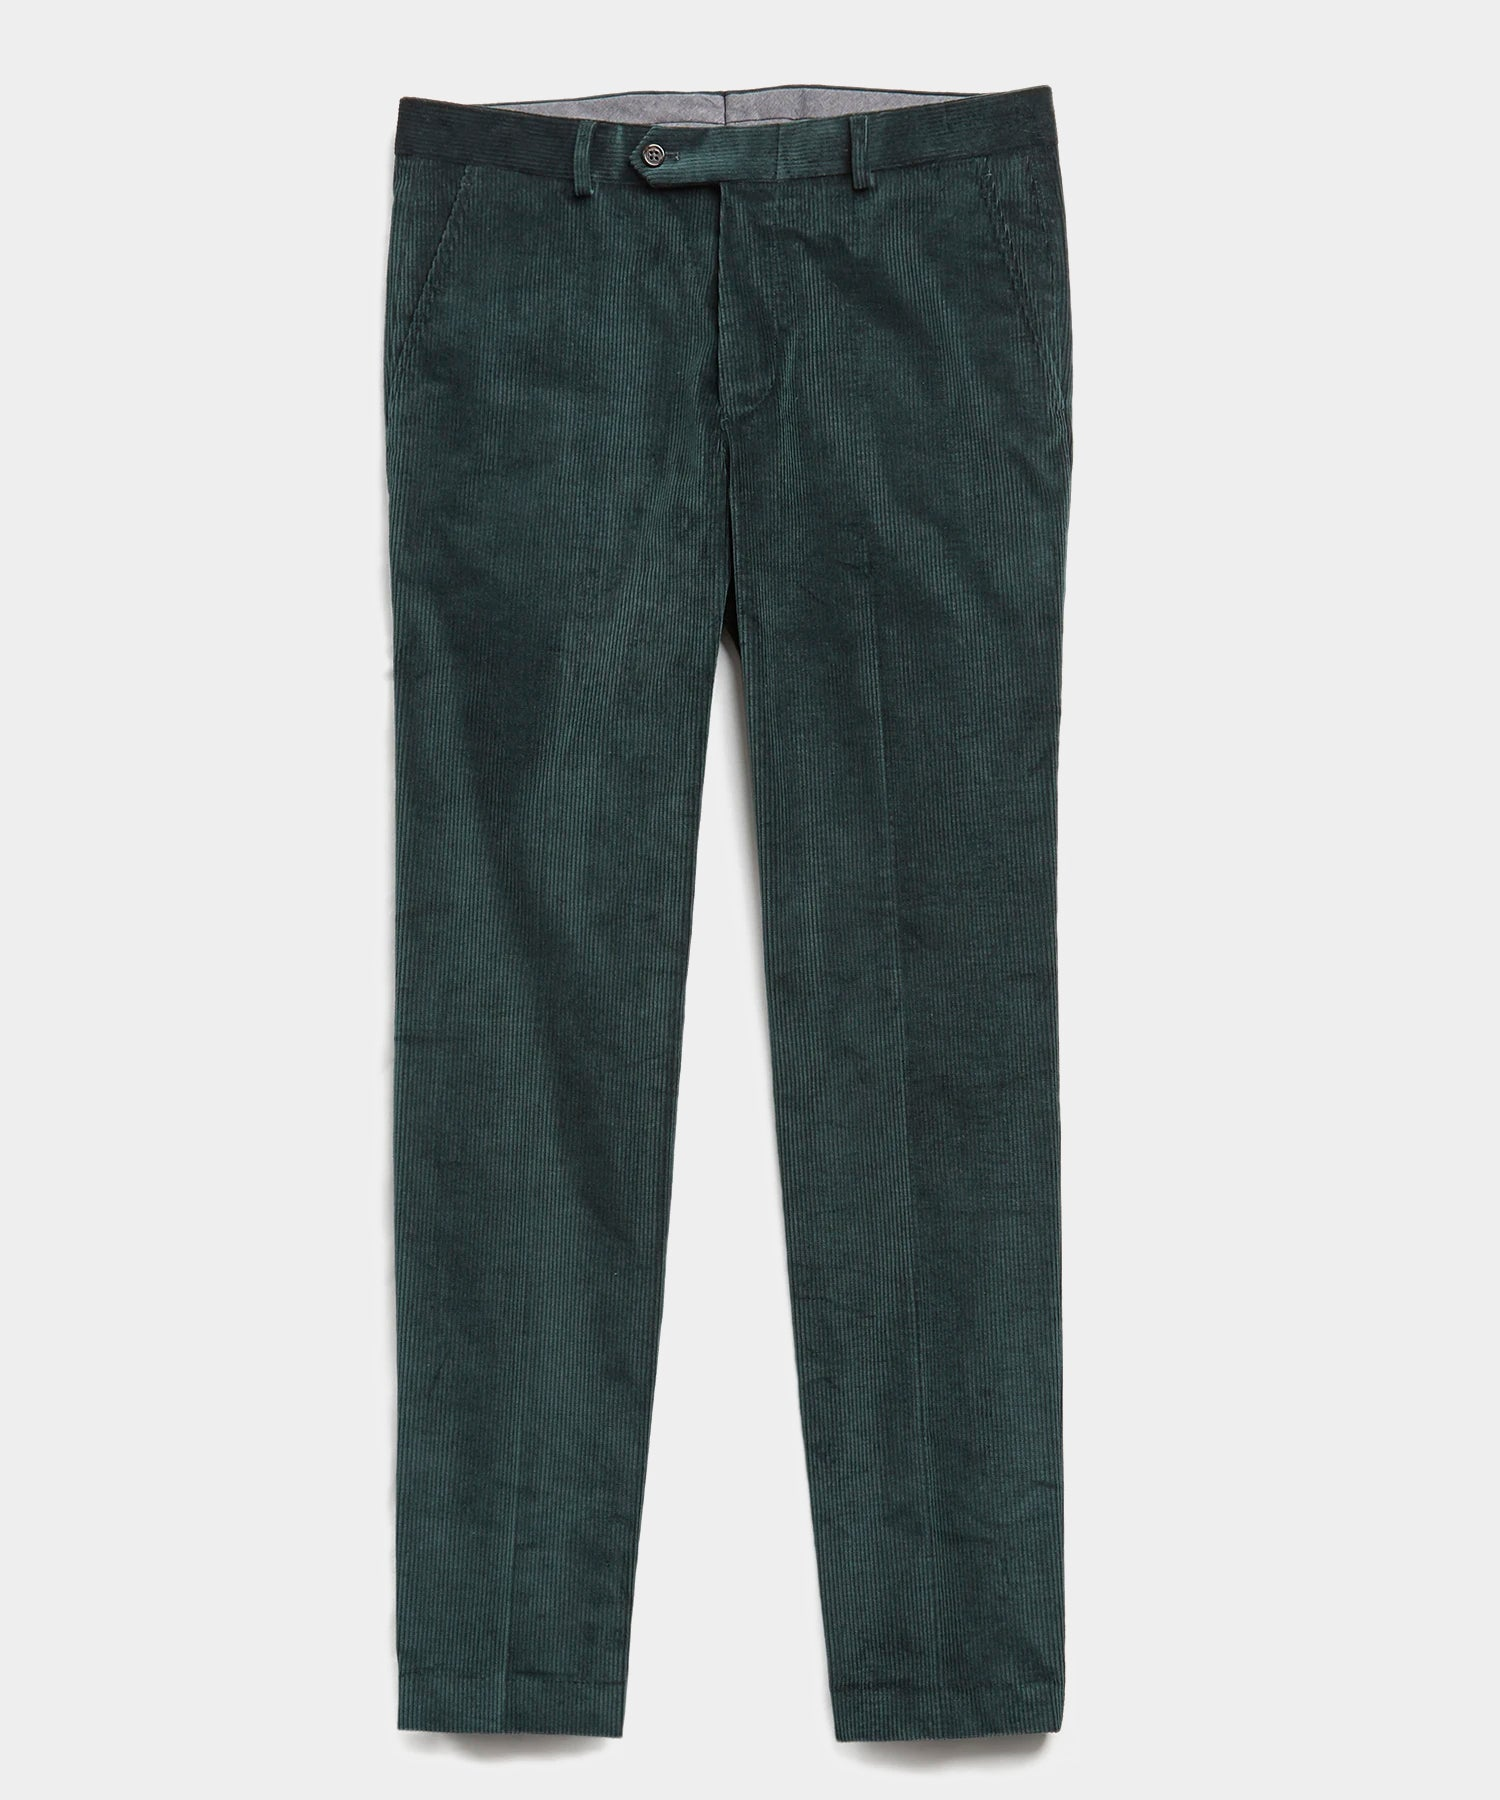 Sutton Corduroy Trouser in Emerald